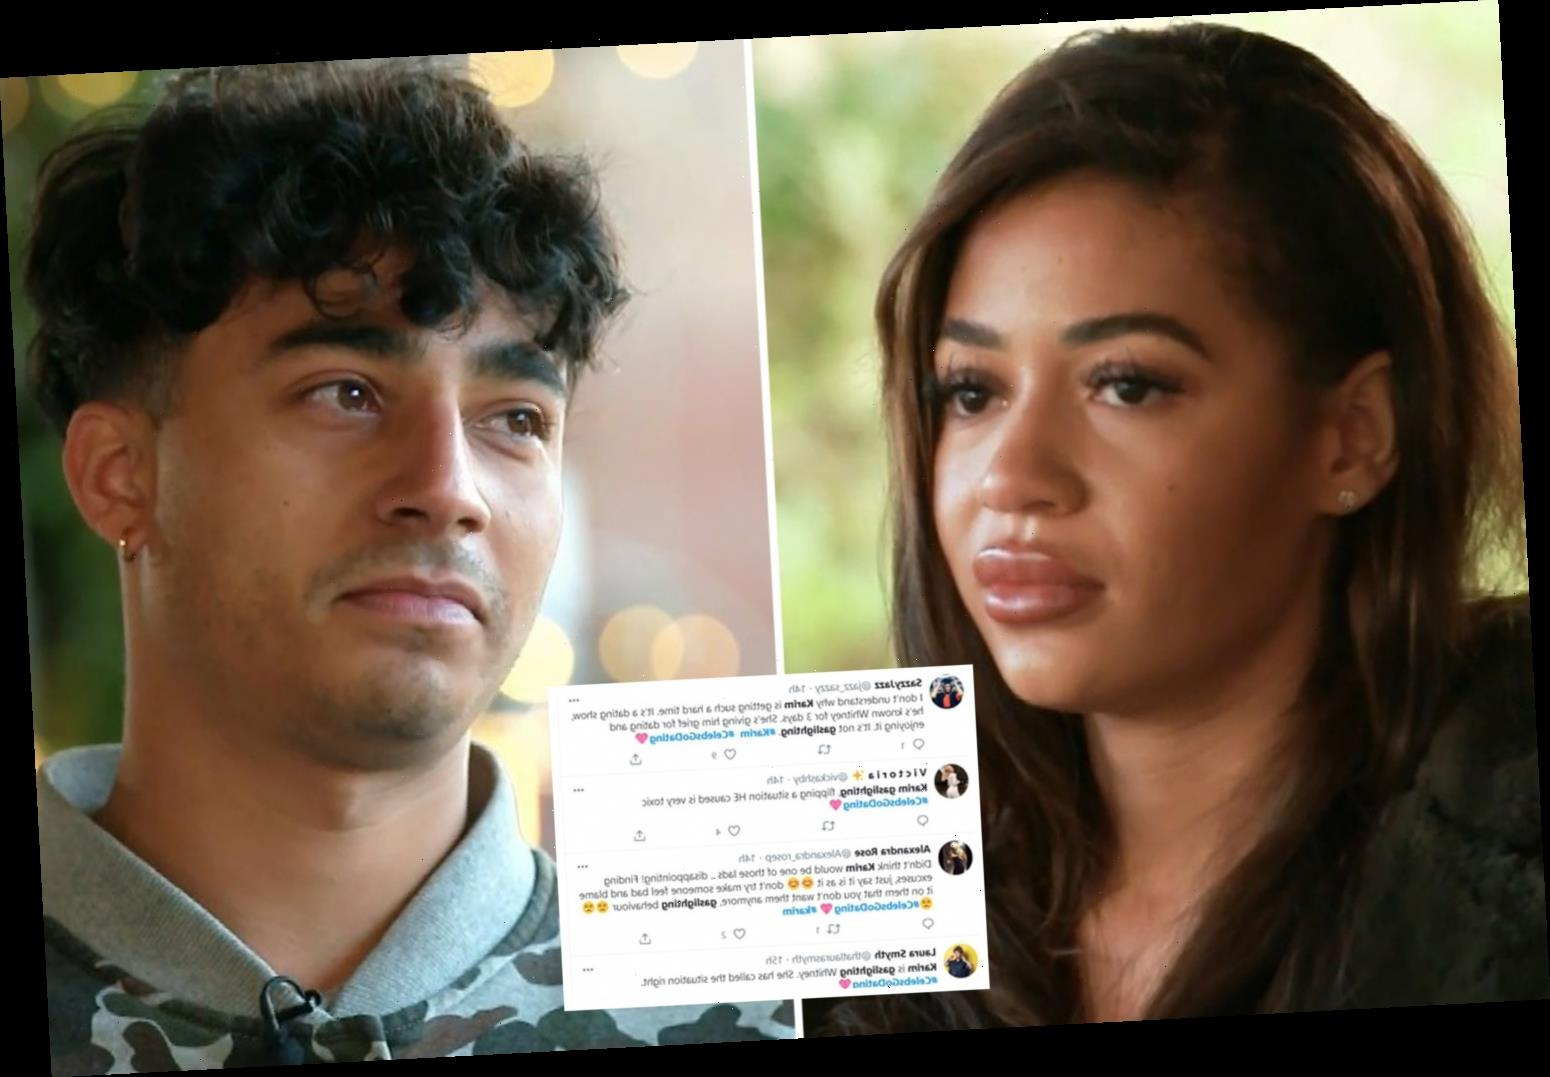 Celebs Go Dating's Karim accused of 'gaslighting' Whitney as furious fans call him an 'a***hole'